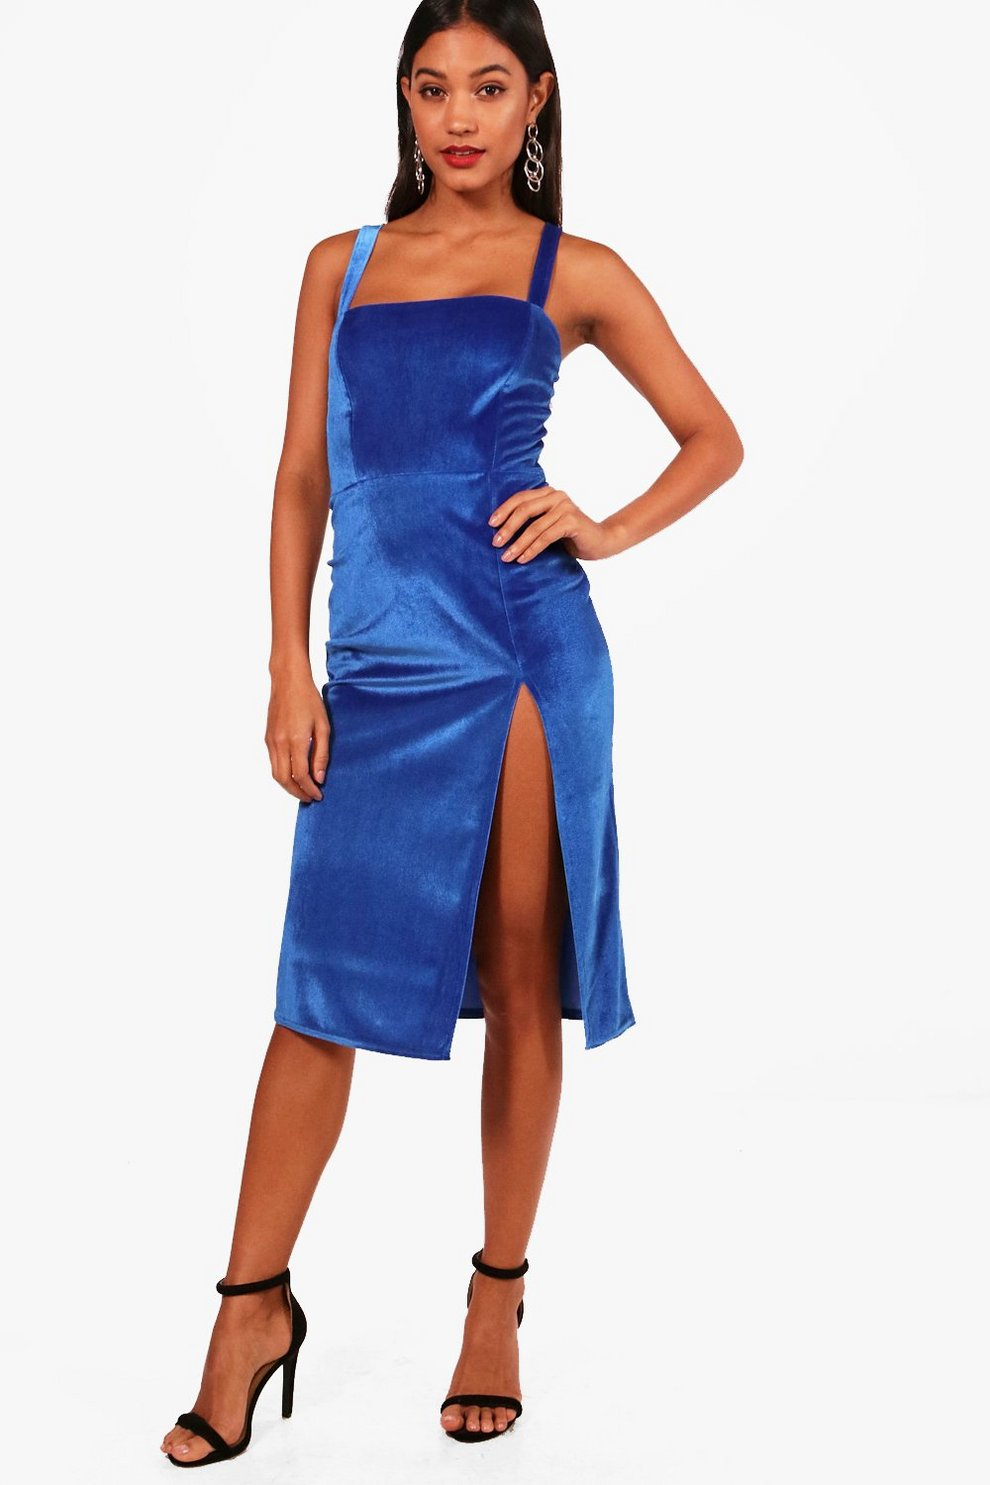 View Cheap Price Boohoo Velvet Strappy Split Leg Midi Dress Extremely Cheap Price Cheap Sale With Paypal Popular Excellent HuPgE8z